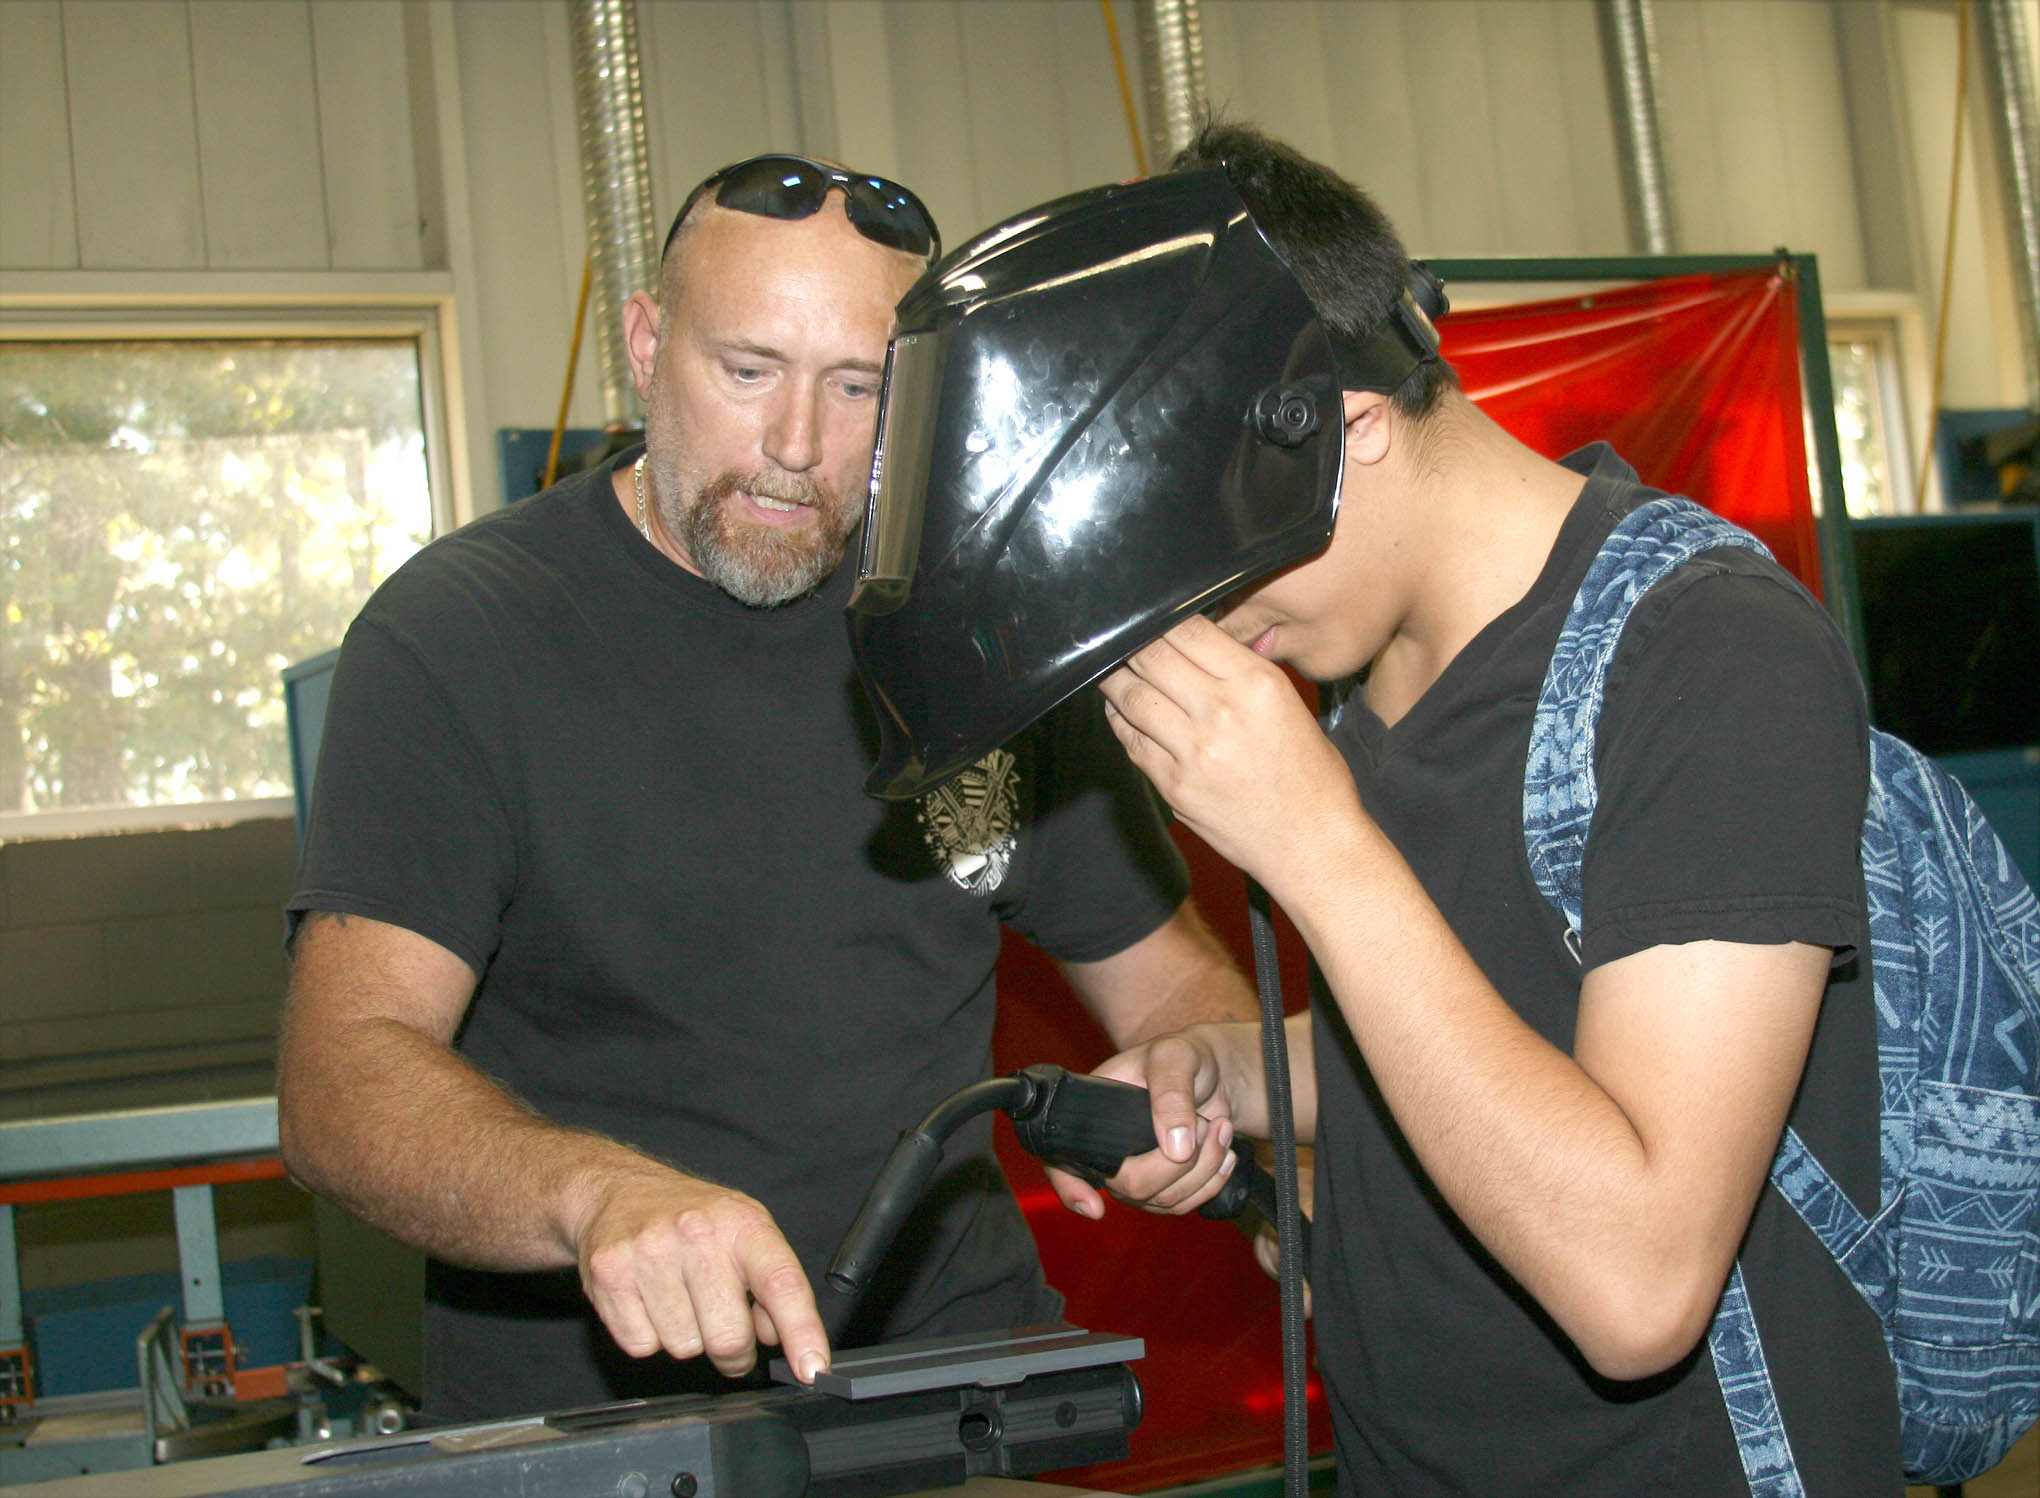 Click to enlarge,  Bryan Reyes (right) works at a welding simulator while Central Carolina Community College welding student Danny Collins watches during National Manufacturing Day at CCCC's Dr. Paul Howard and Dr. Barbara James Innovation Center.